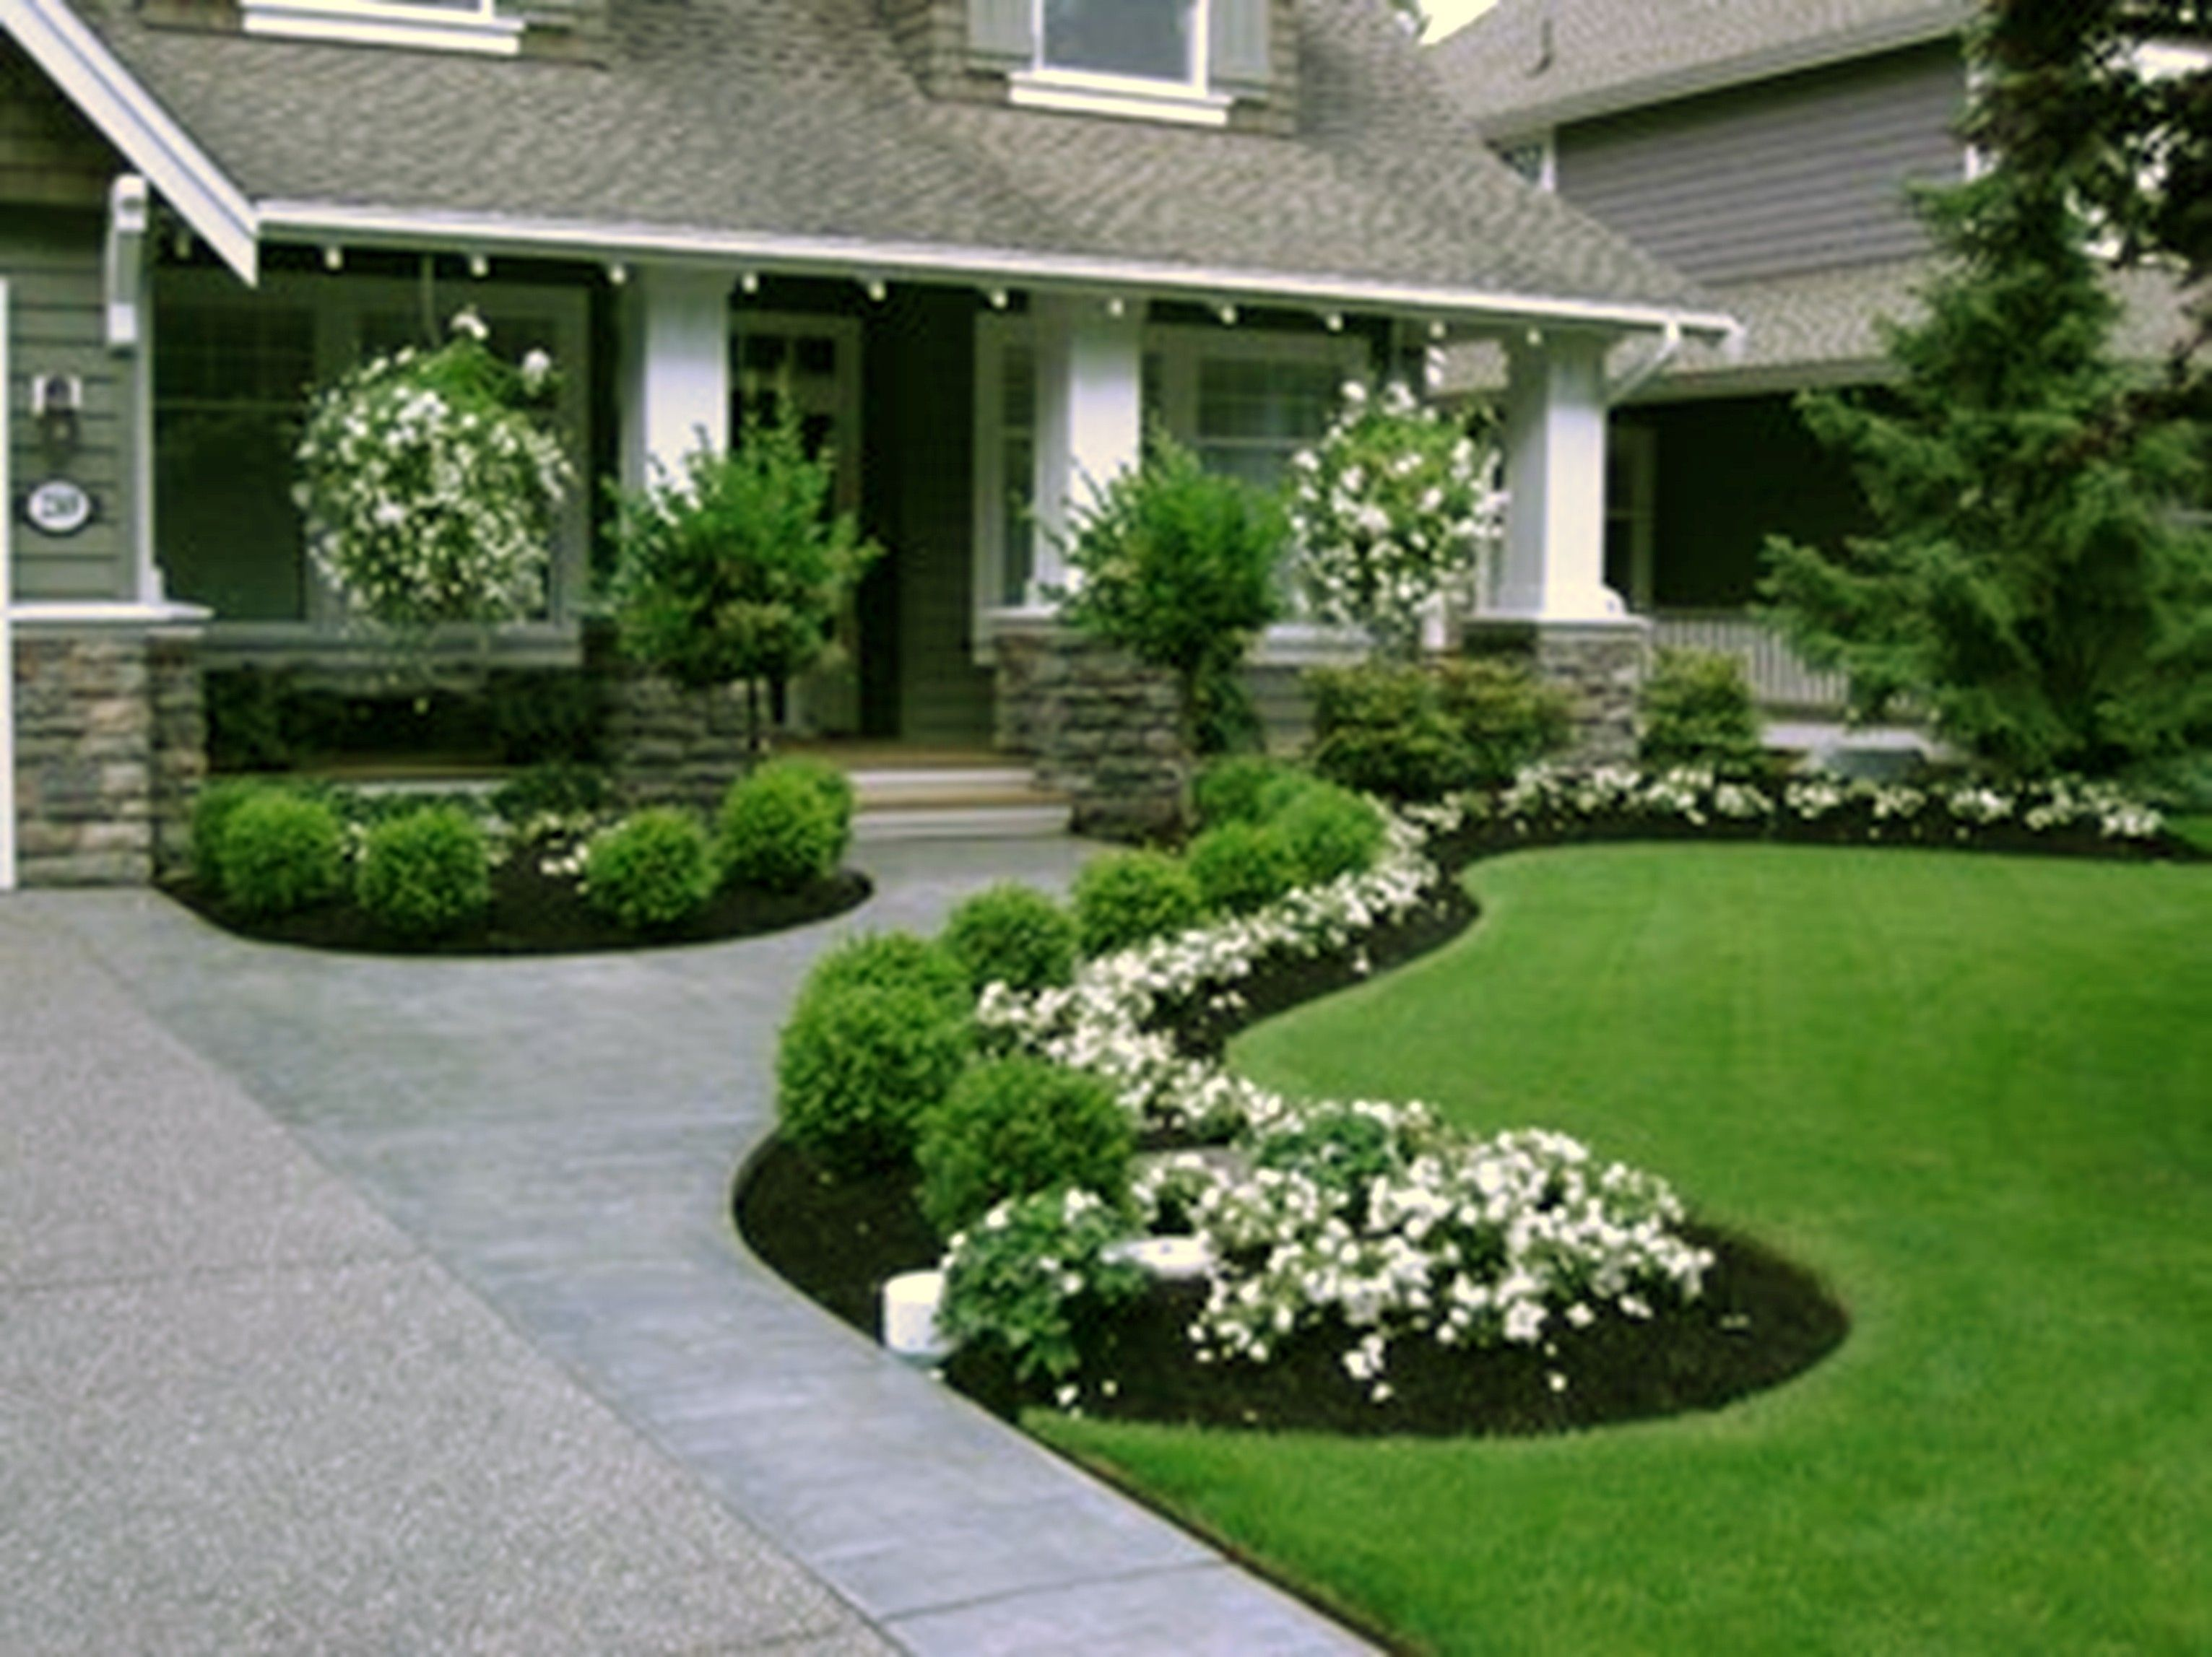 image result for diy front walkway landscaping ideas | front yard